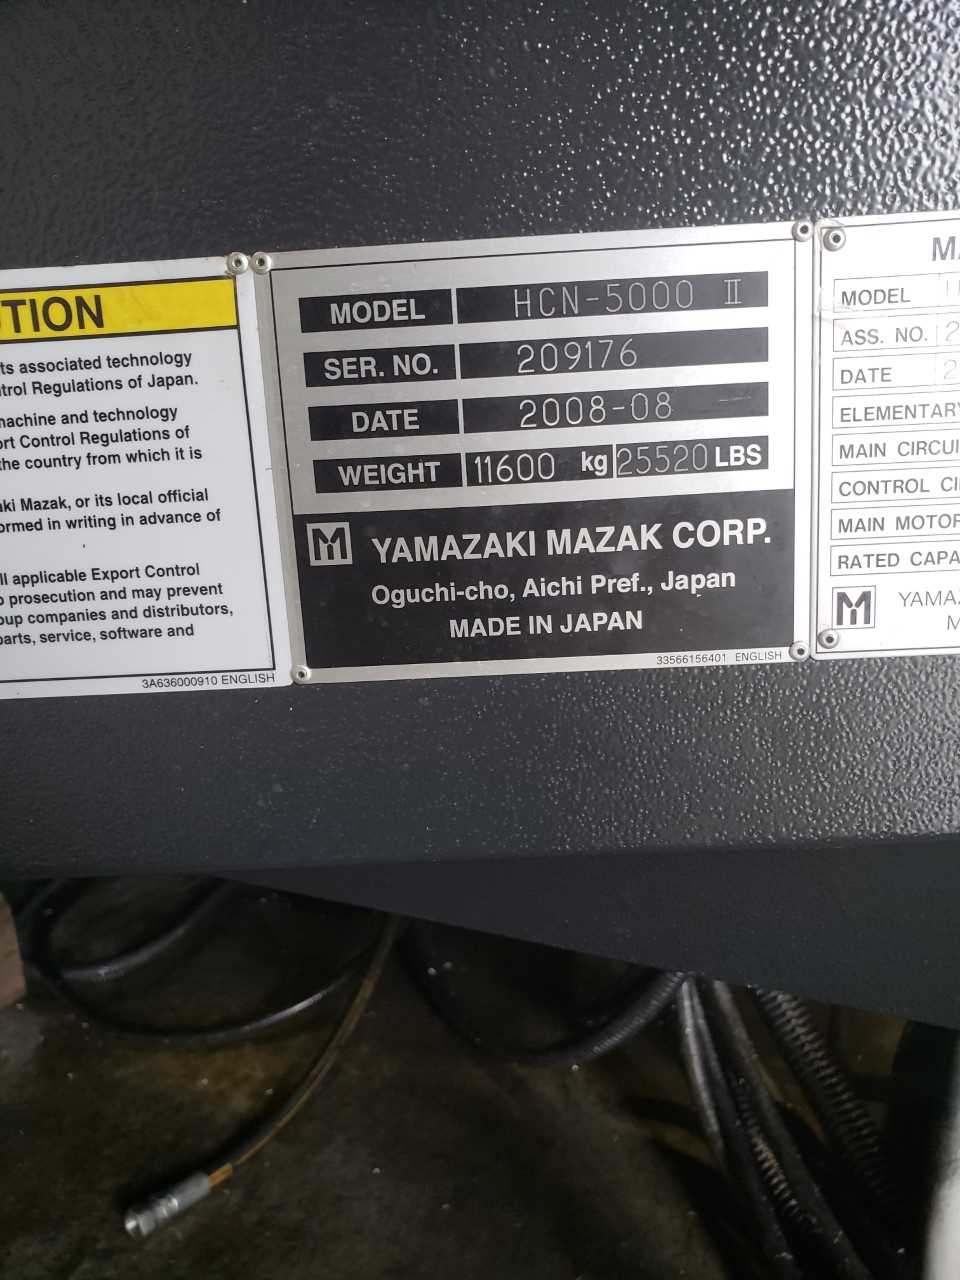 Used 2008 Mazak Hcn 5000 Horizontal Maching Center Asi Machine Tool Lathe Wiring Diagram